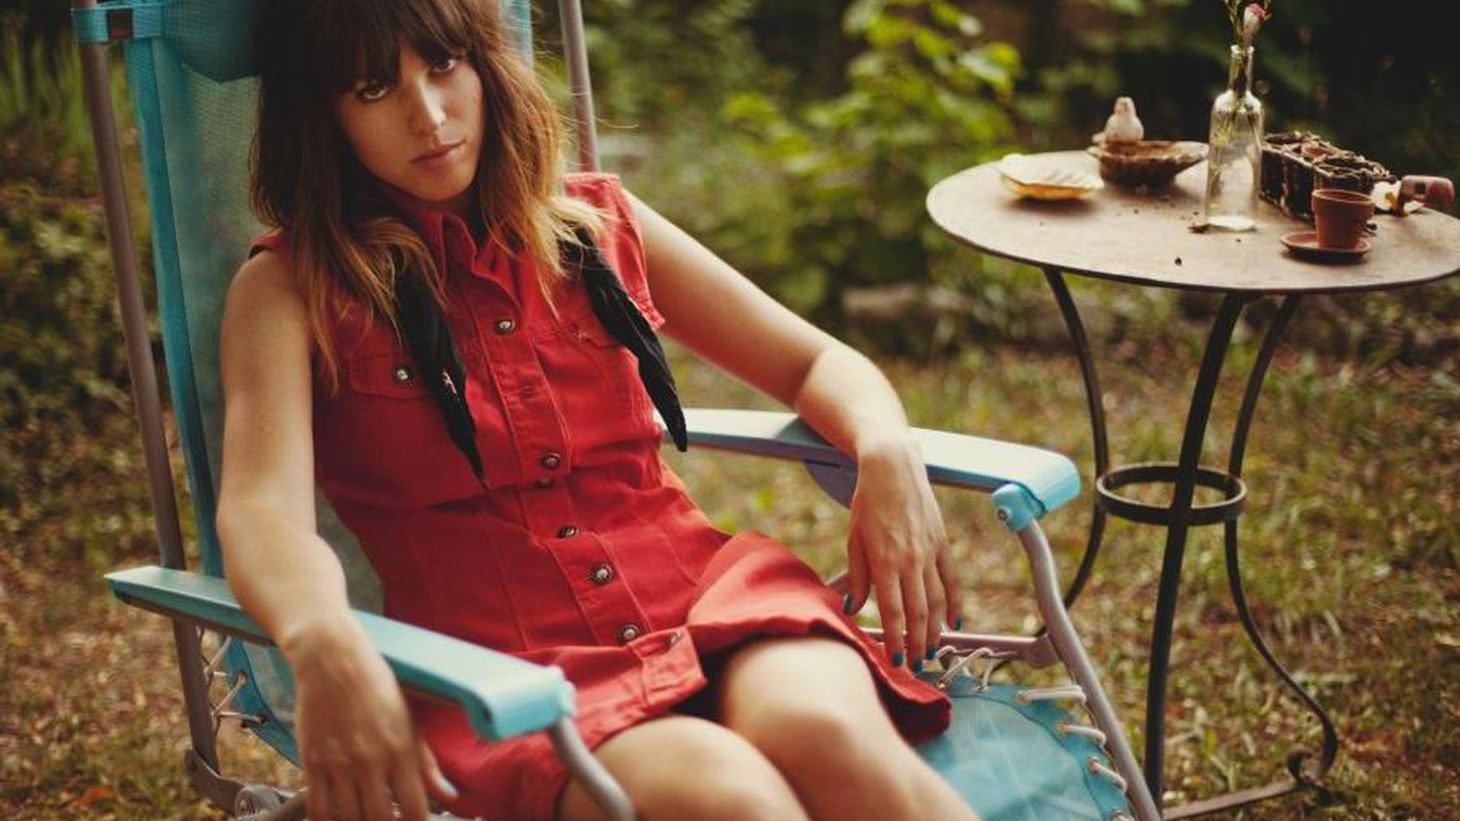 The retro-sounding debut by Paris-based Melody's Echo Chamber is hard to decipher as hazy vocals and distorted melodies meld into moody layers.